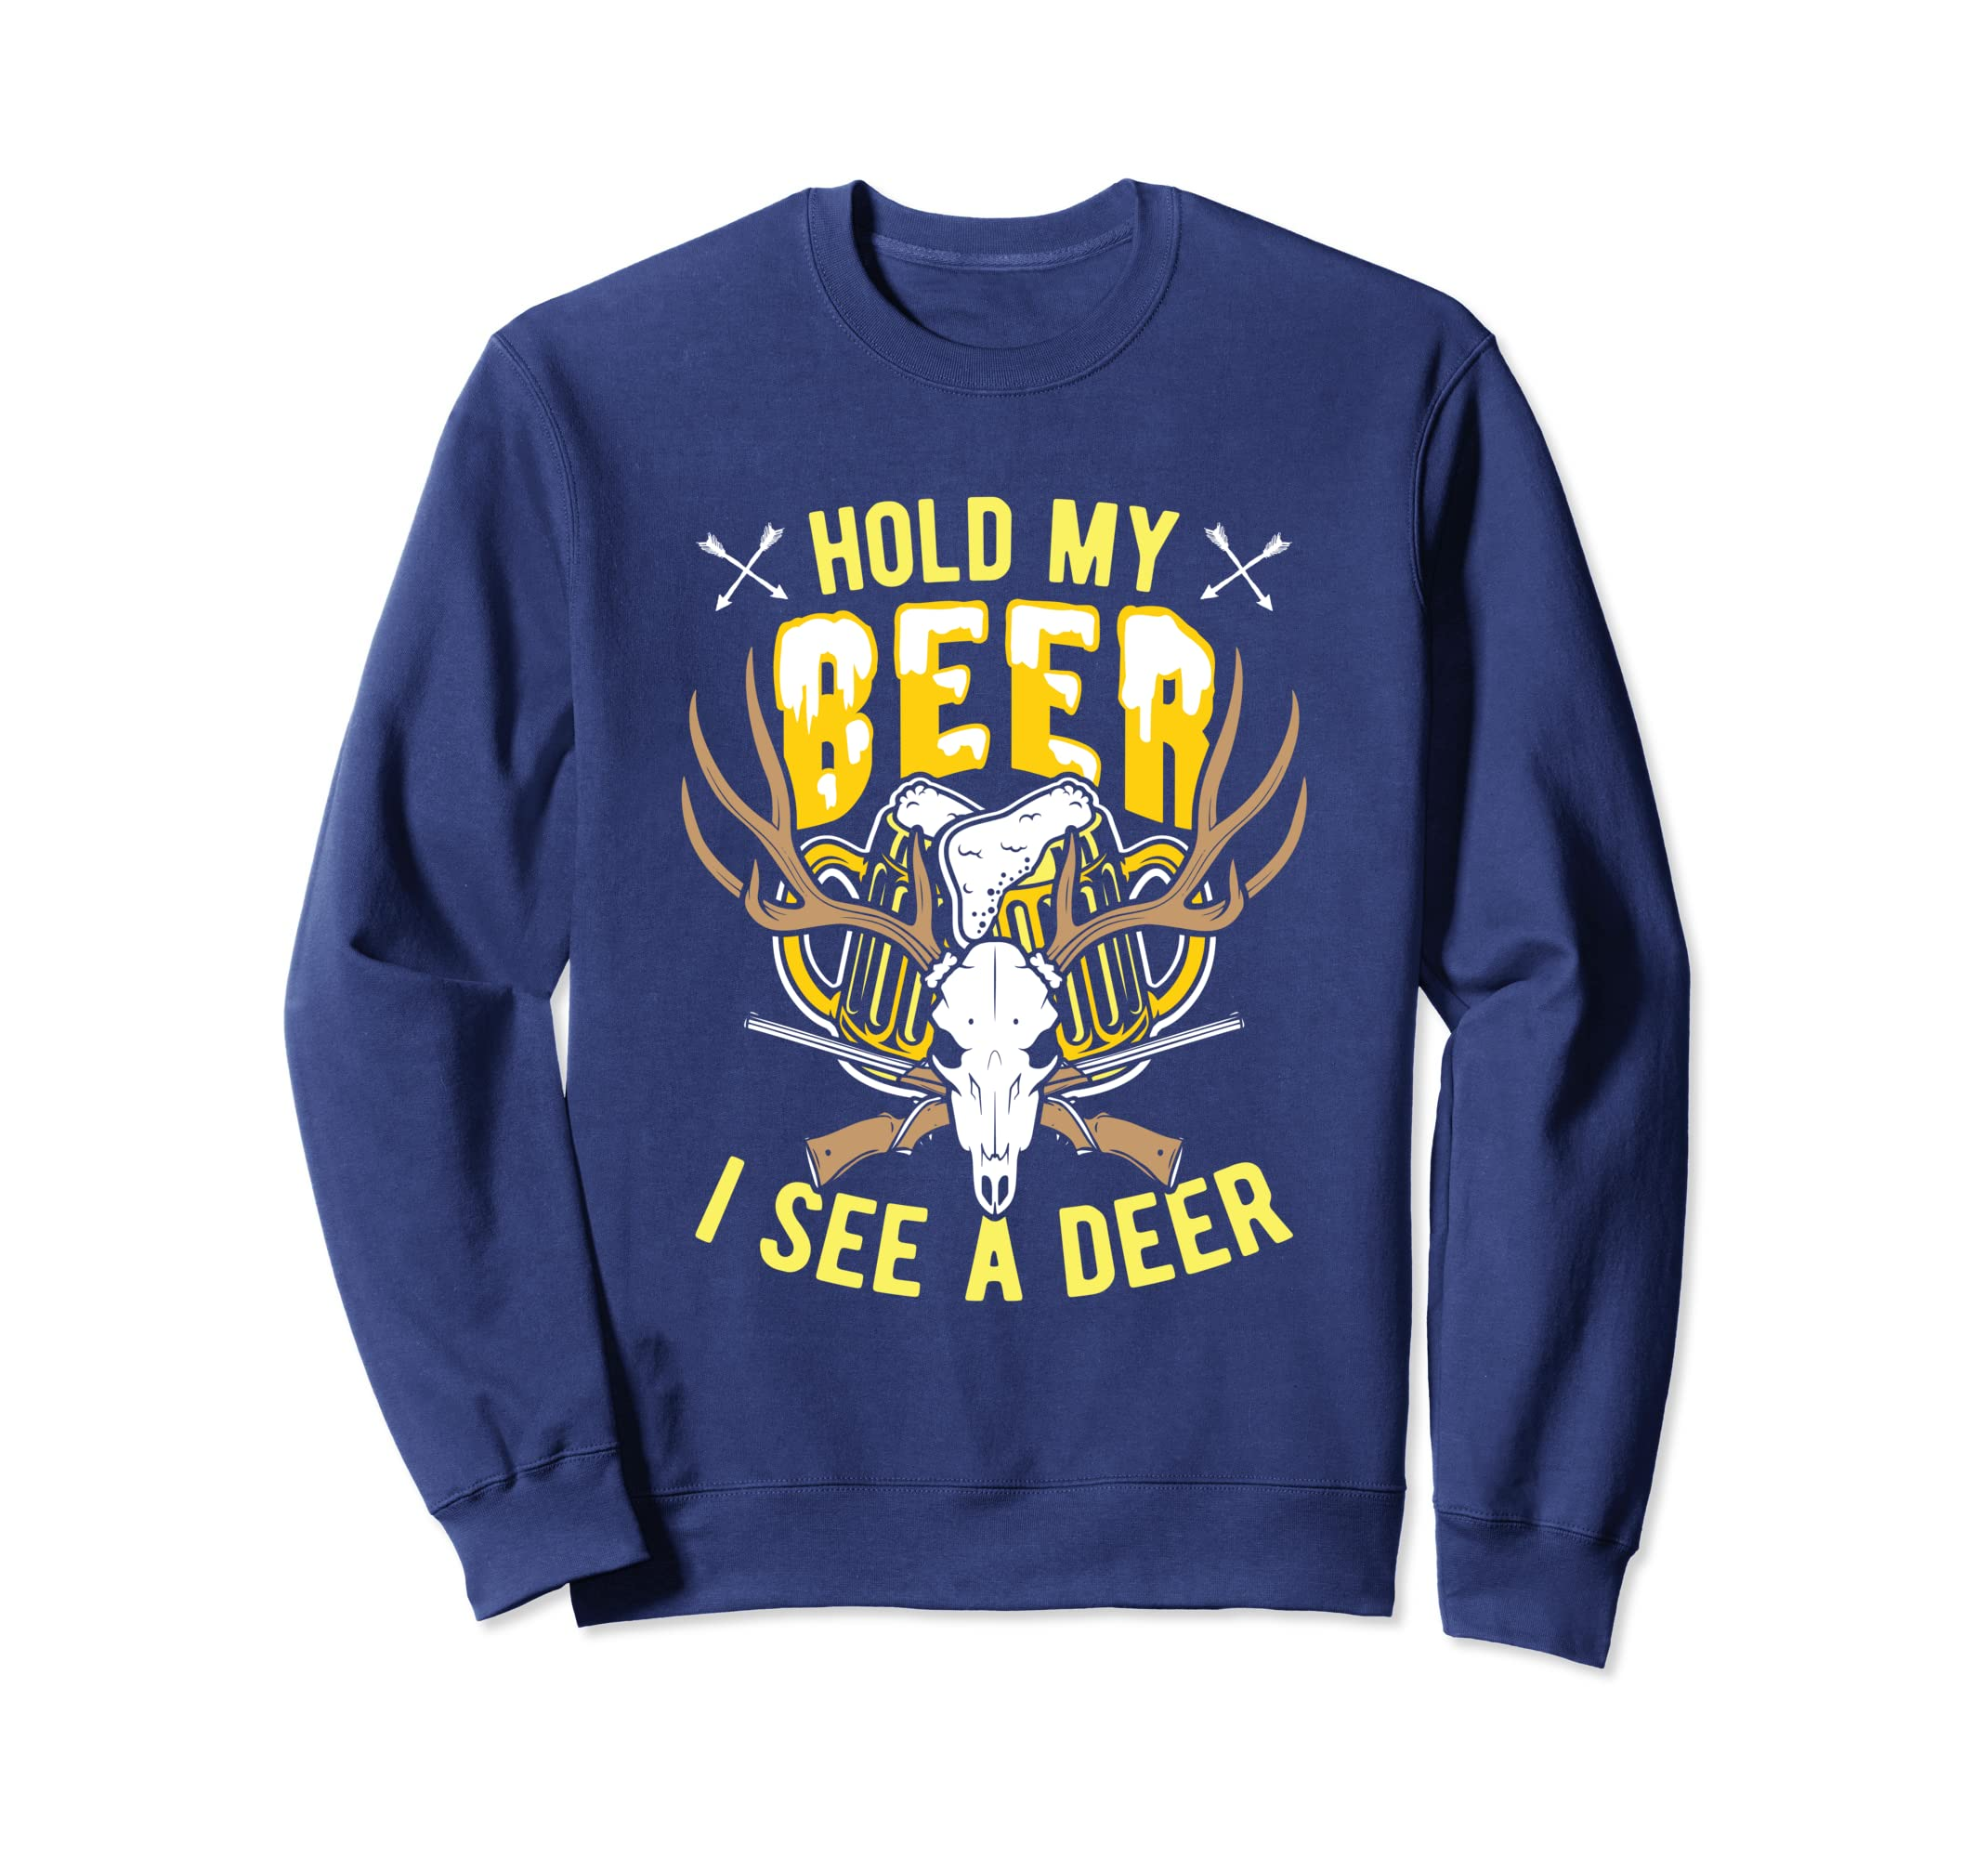 1d4cf289 Amazon.com: deer hunting hold my beer i see a deer t shirt: Clothing